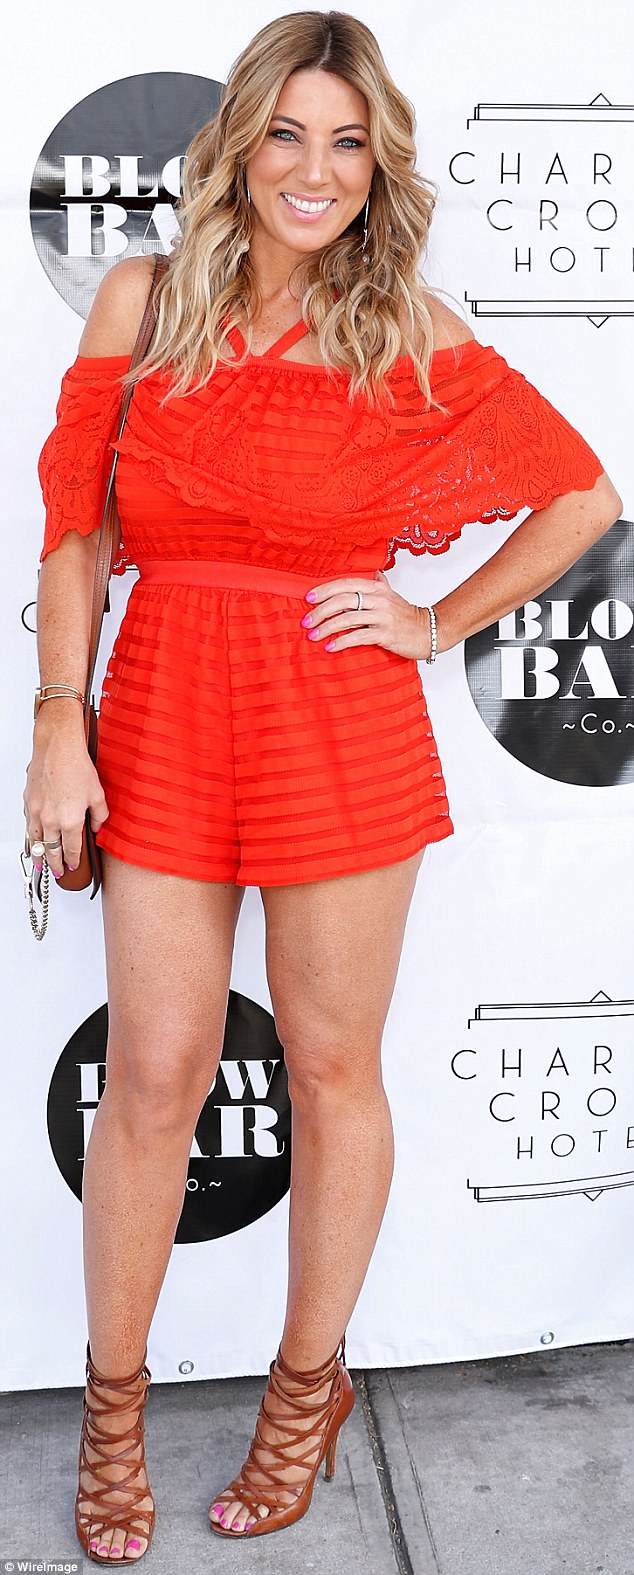 Woman in red: Amber was joined at the event by journalist Jo Casamento who looked stunning in a skimpy bright red playsuit